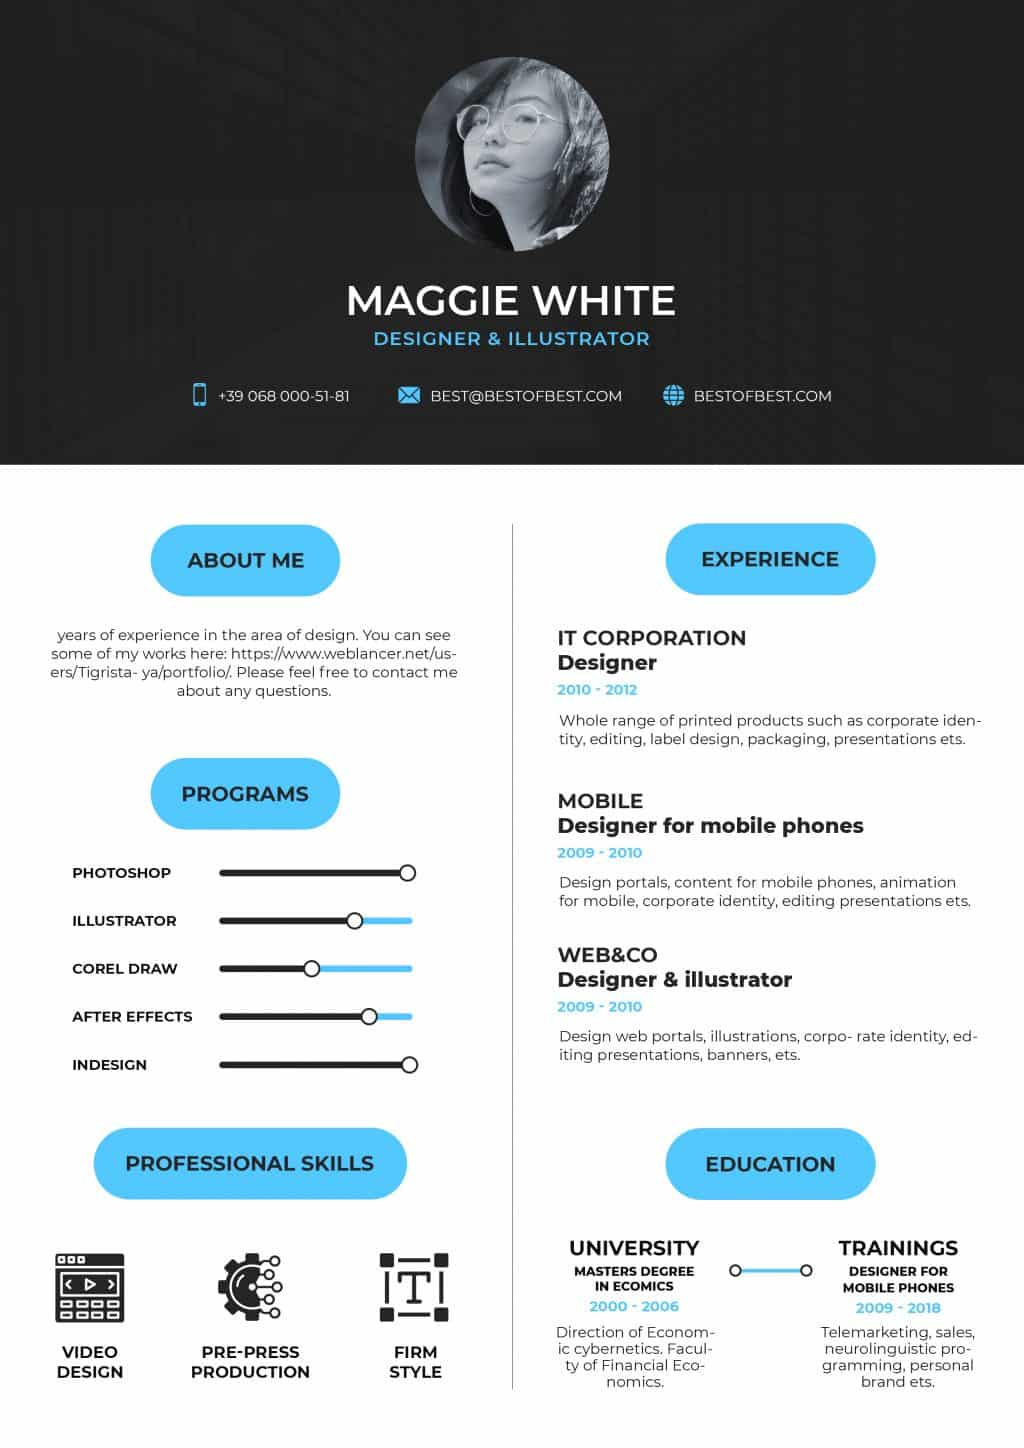 Best College Resume Templates 2020: 5 colors - $8 - resume 1 2